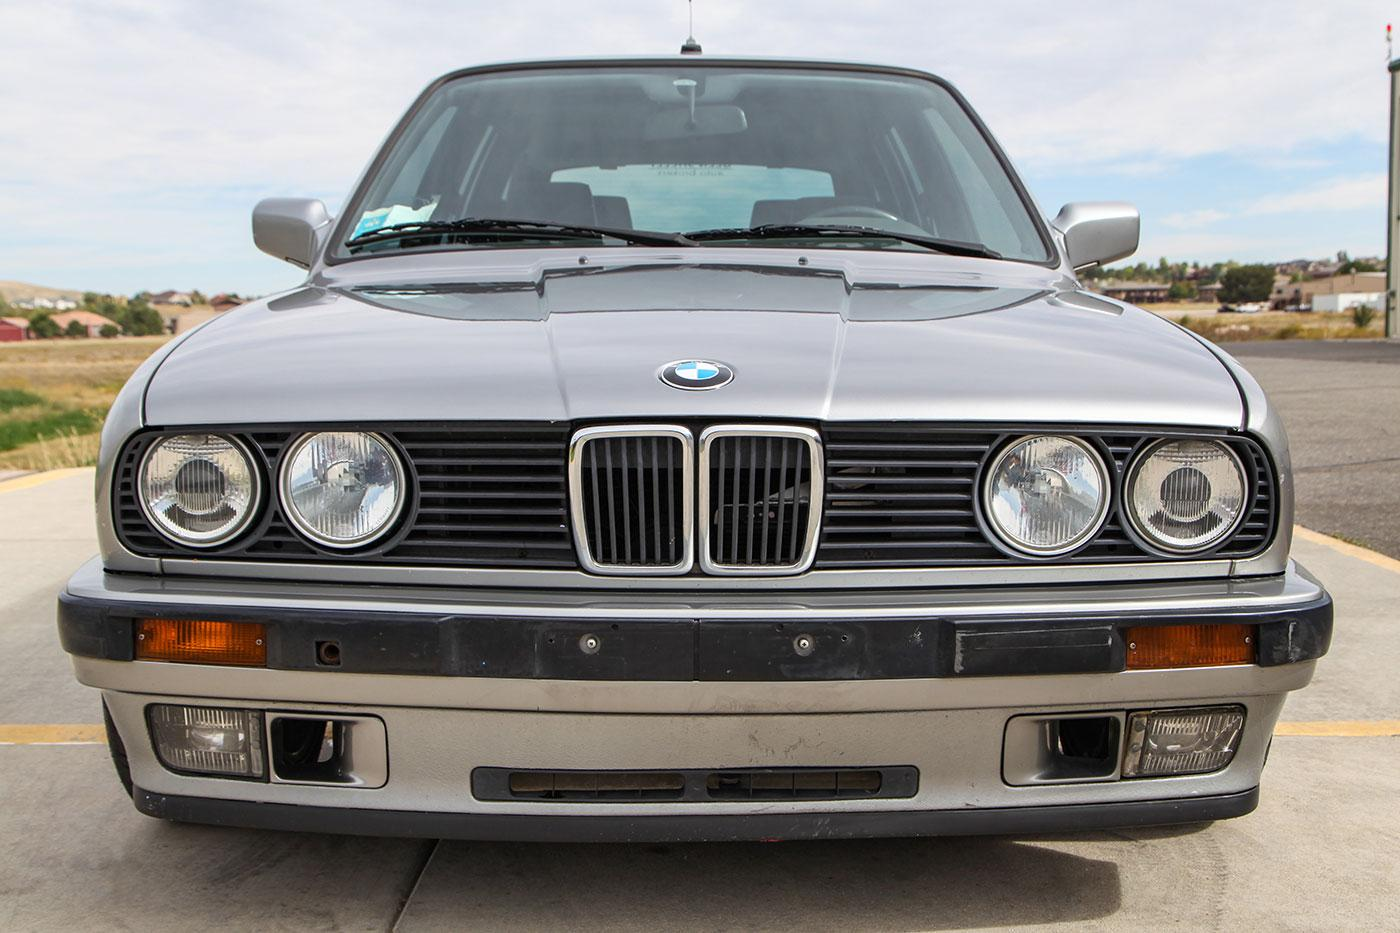 1989 BMW (E30) Euro S50B30-Swapped Touring exterior photo